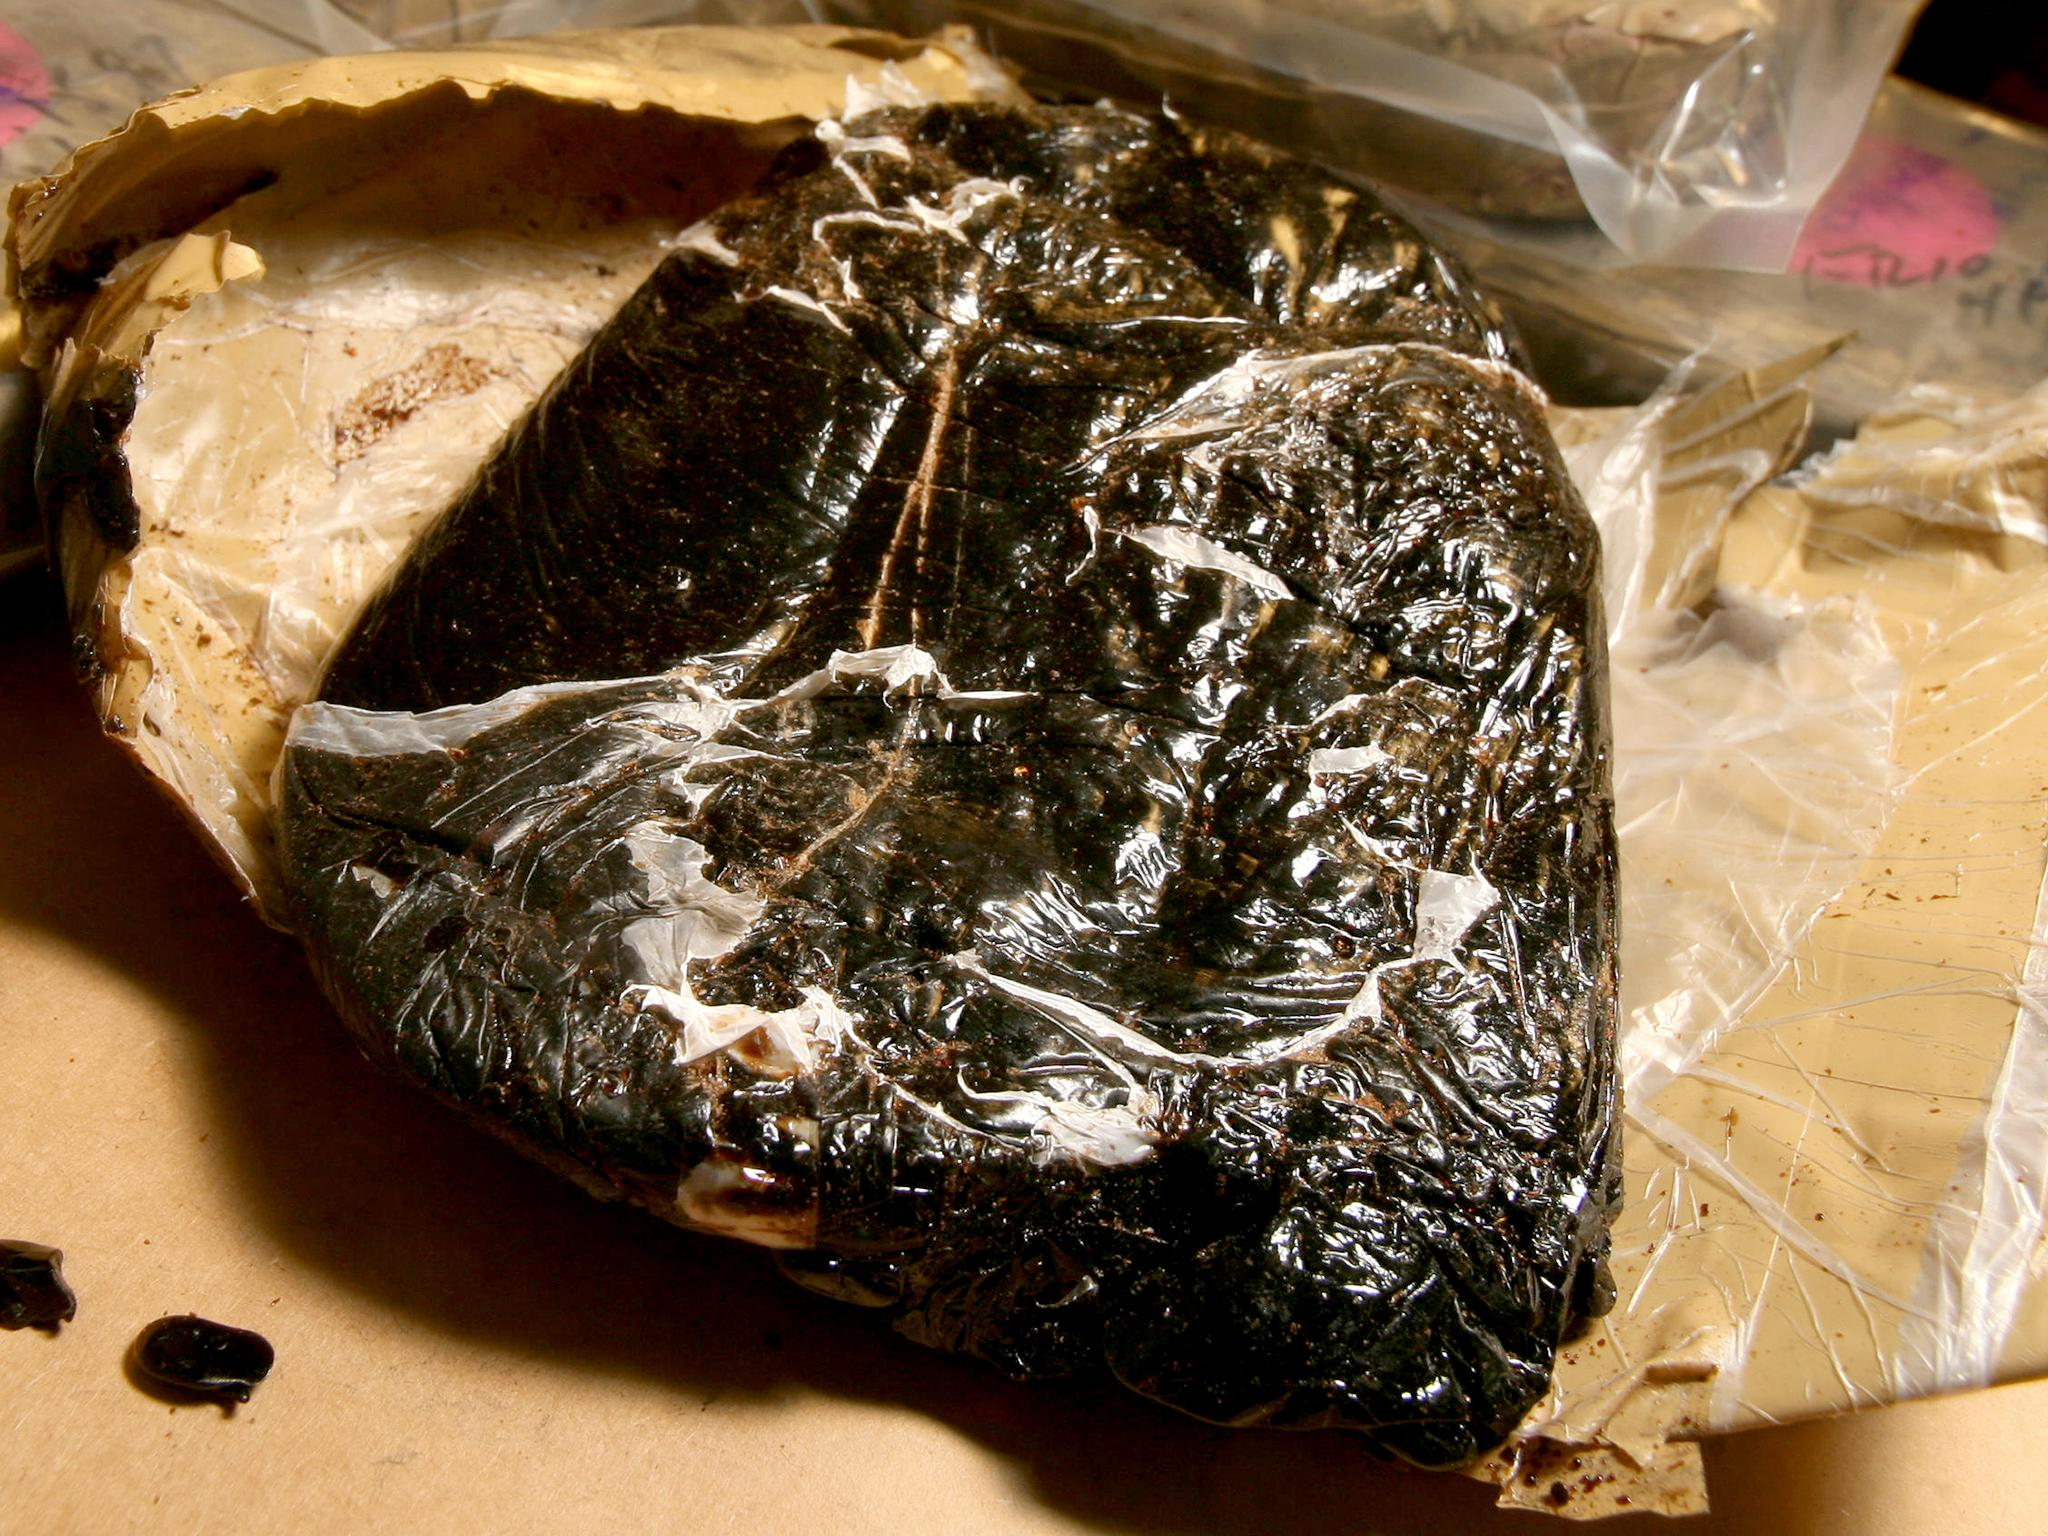 Black Tar Heroin 2000s Photo